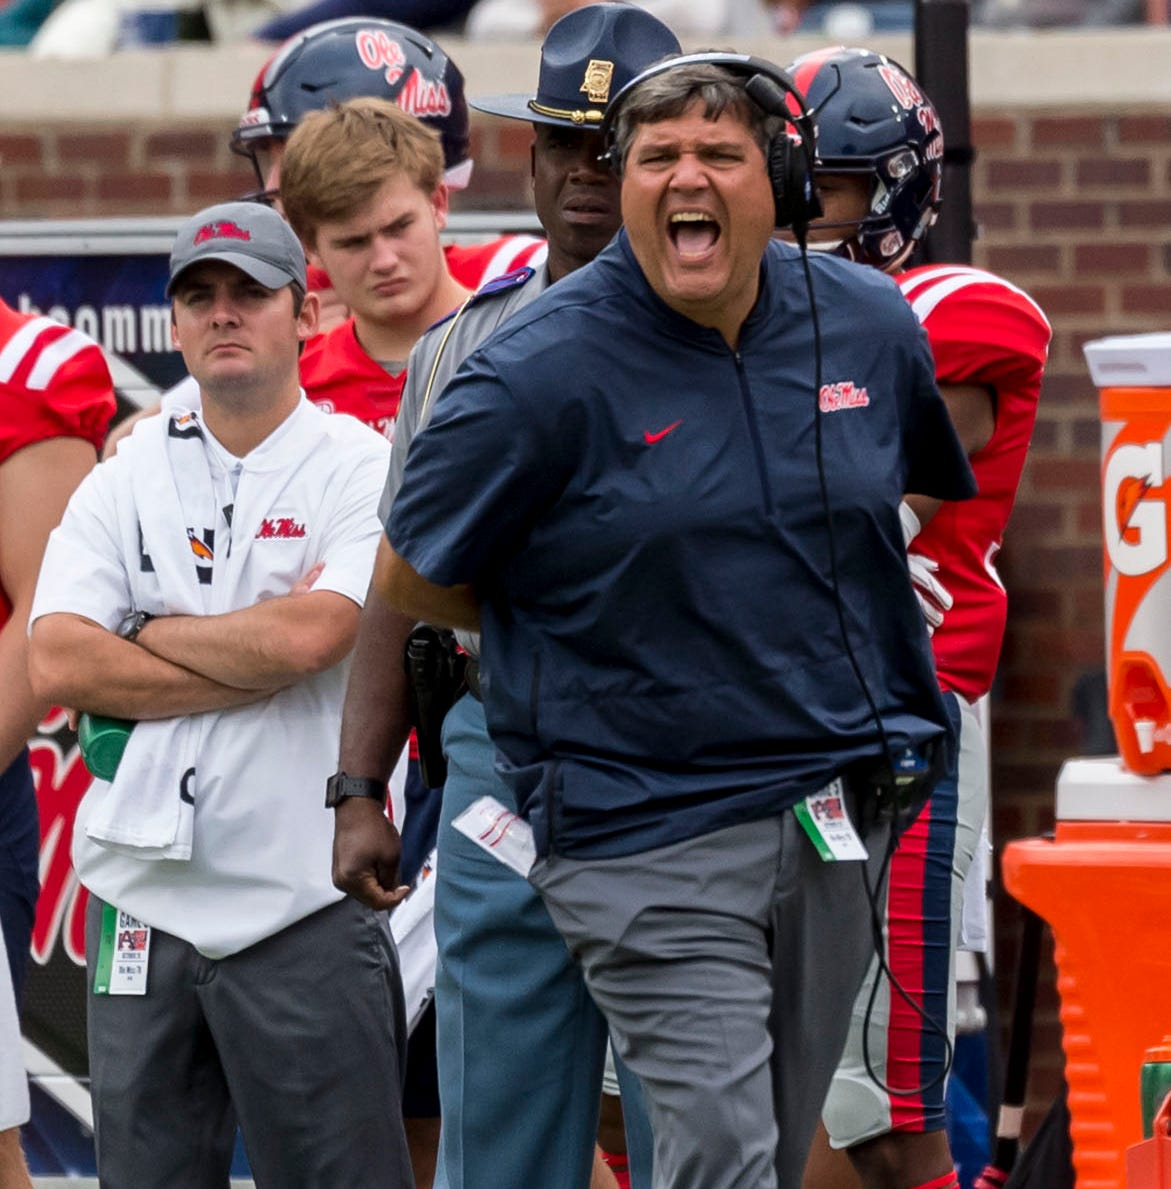 What Ole Miss coach Matt Luke said after the Rebels' 31-16 loss versus Auburn on Saturday